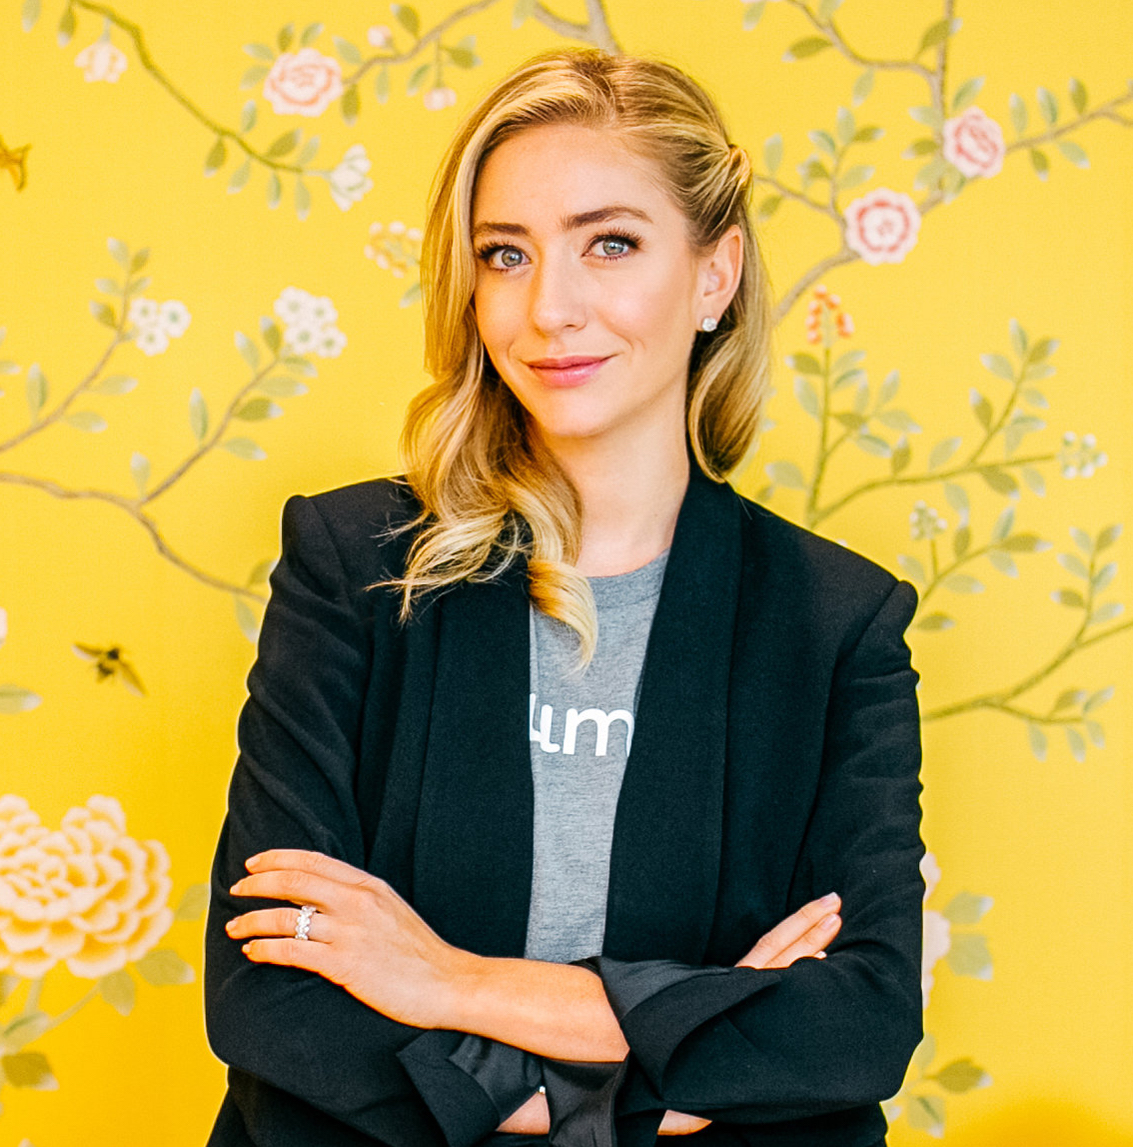 Bumble Ceo Whitney Wolfe Herd Is Coming To Disrupt Sf Techcrunch